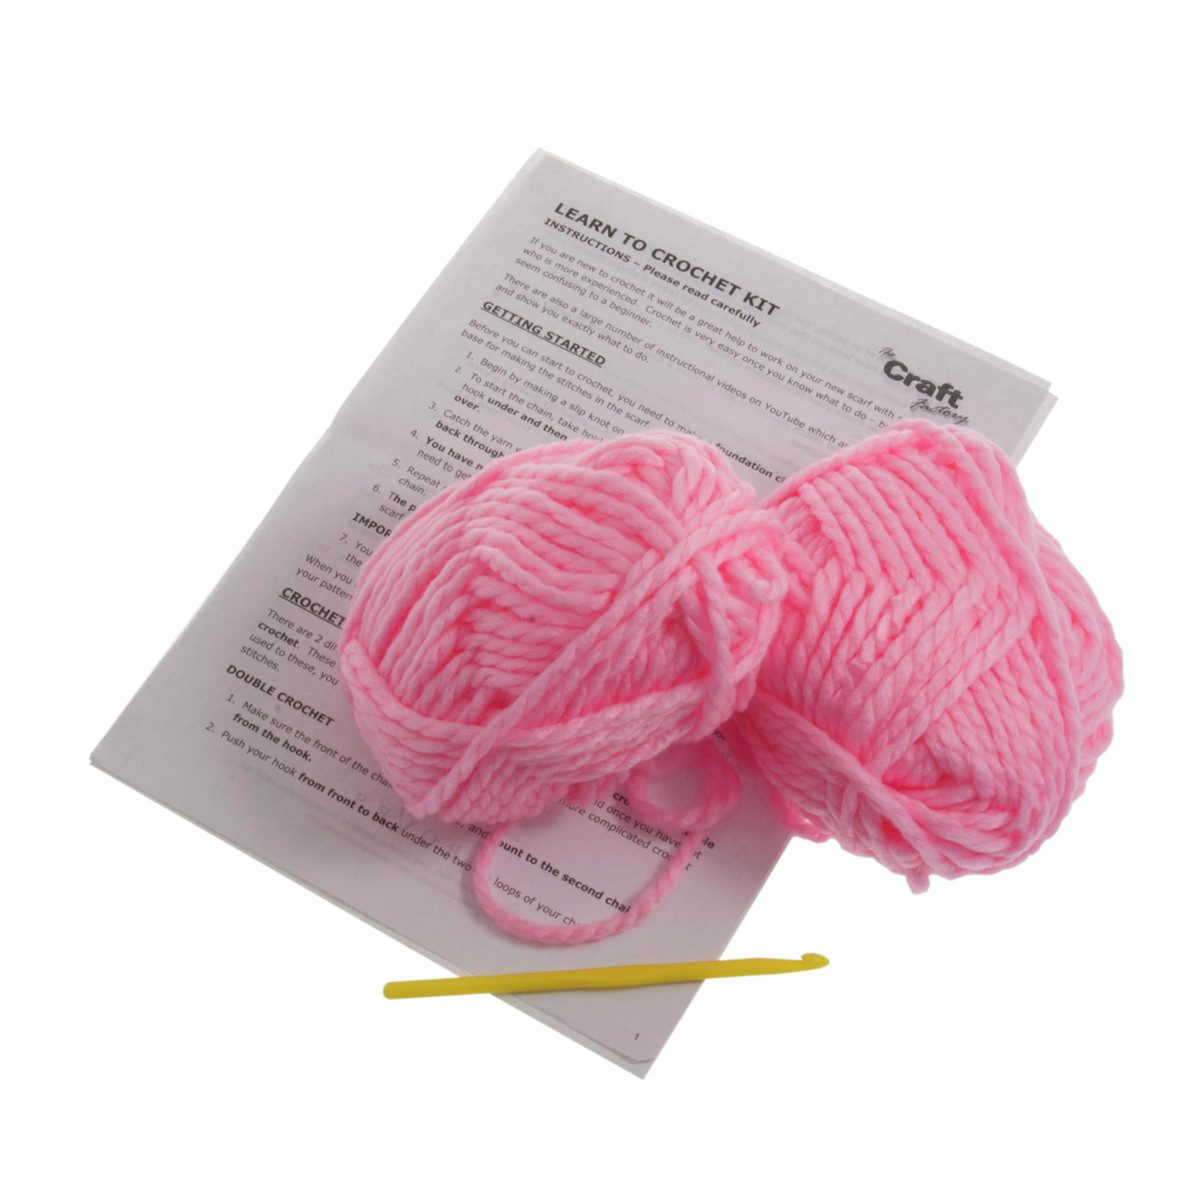 Learn to Crochet Fresh Learn to Crochet Kit Of Top 49 Pictures Learn to Crochet